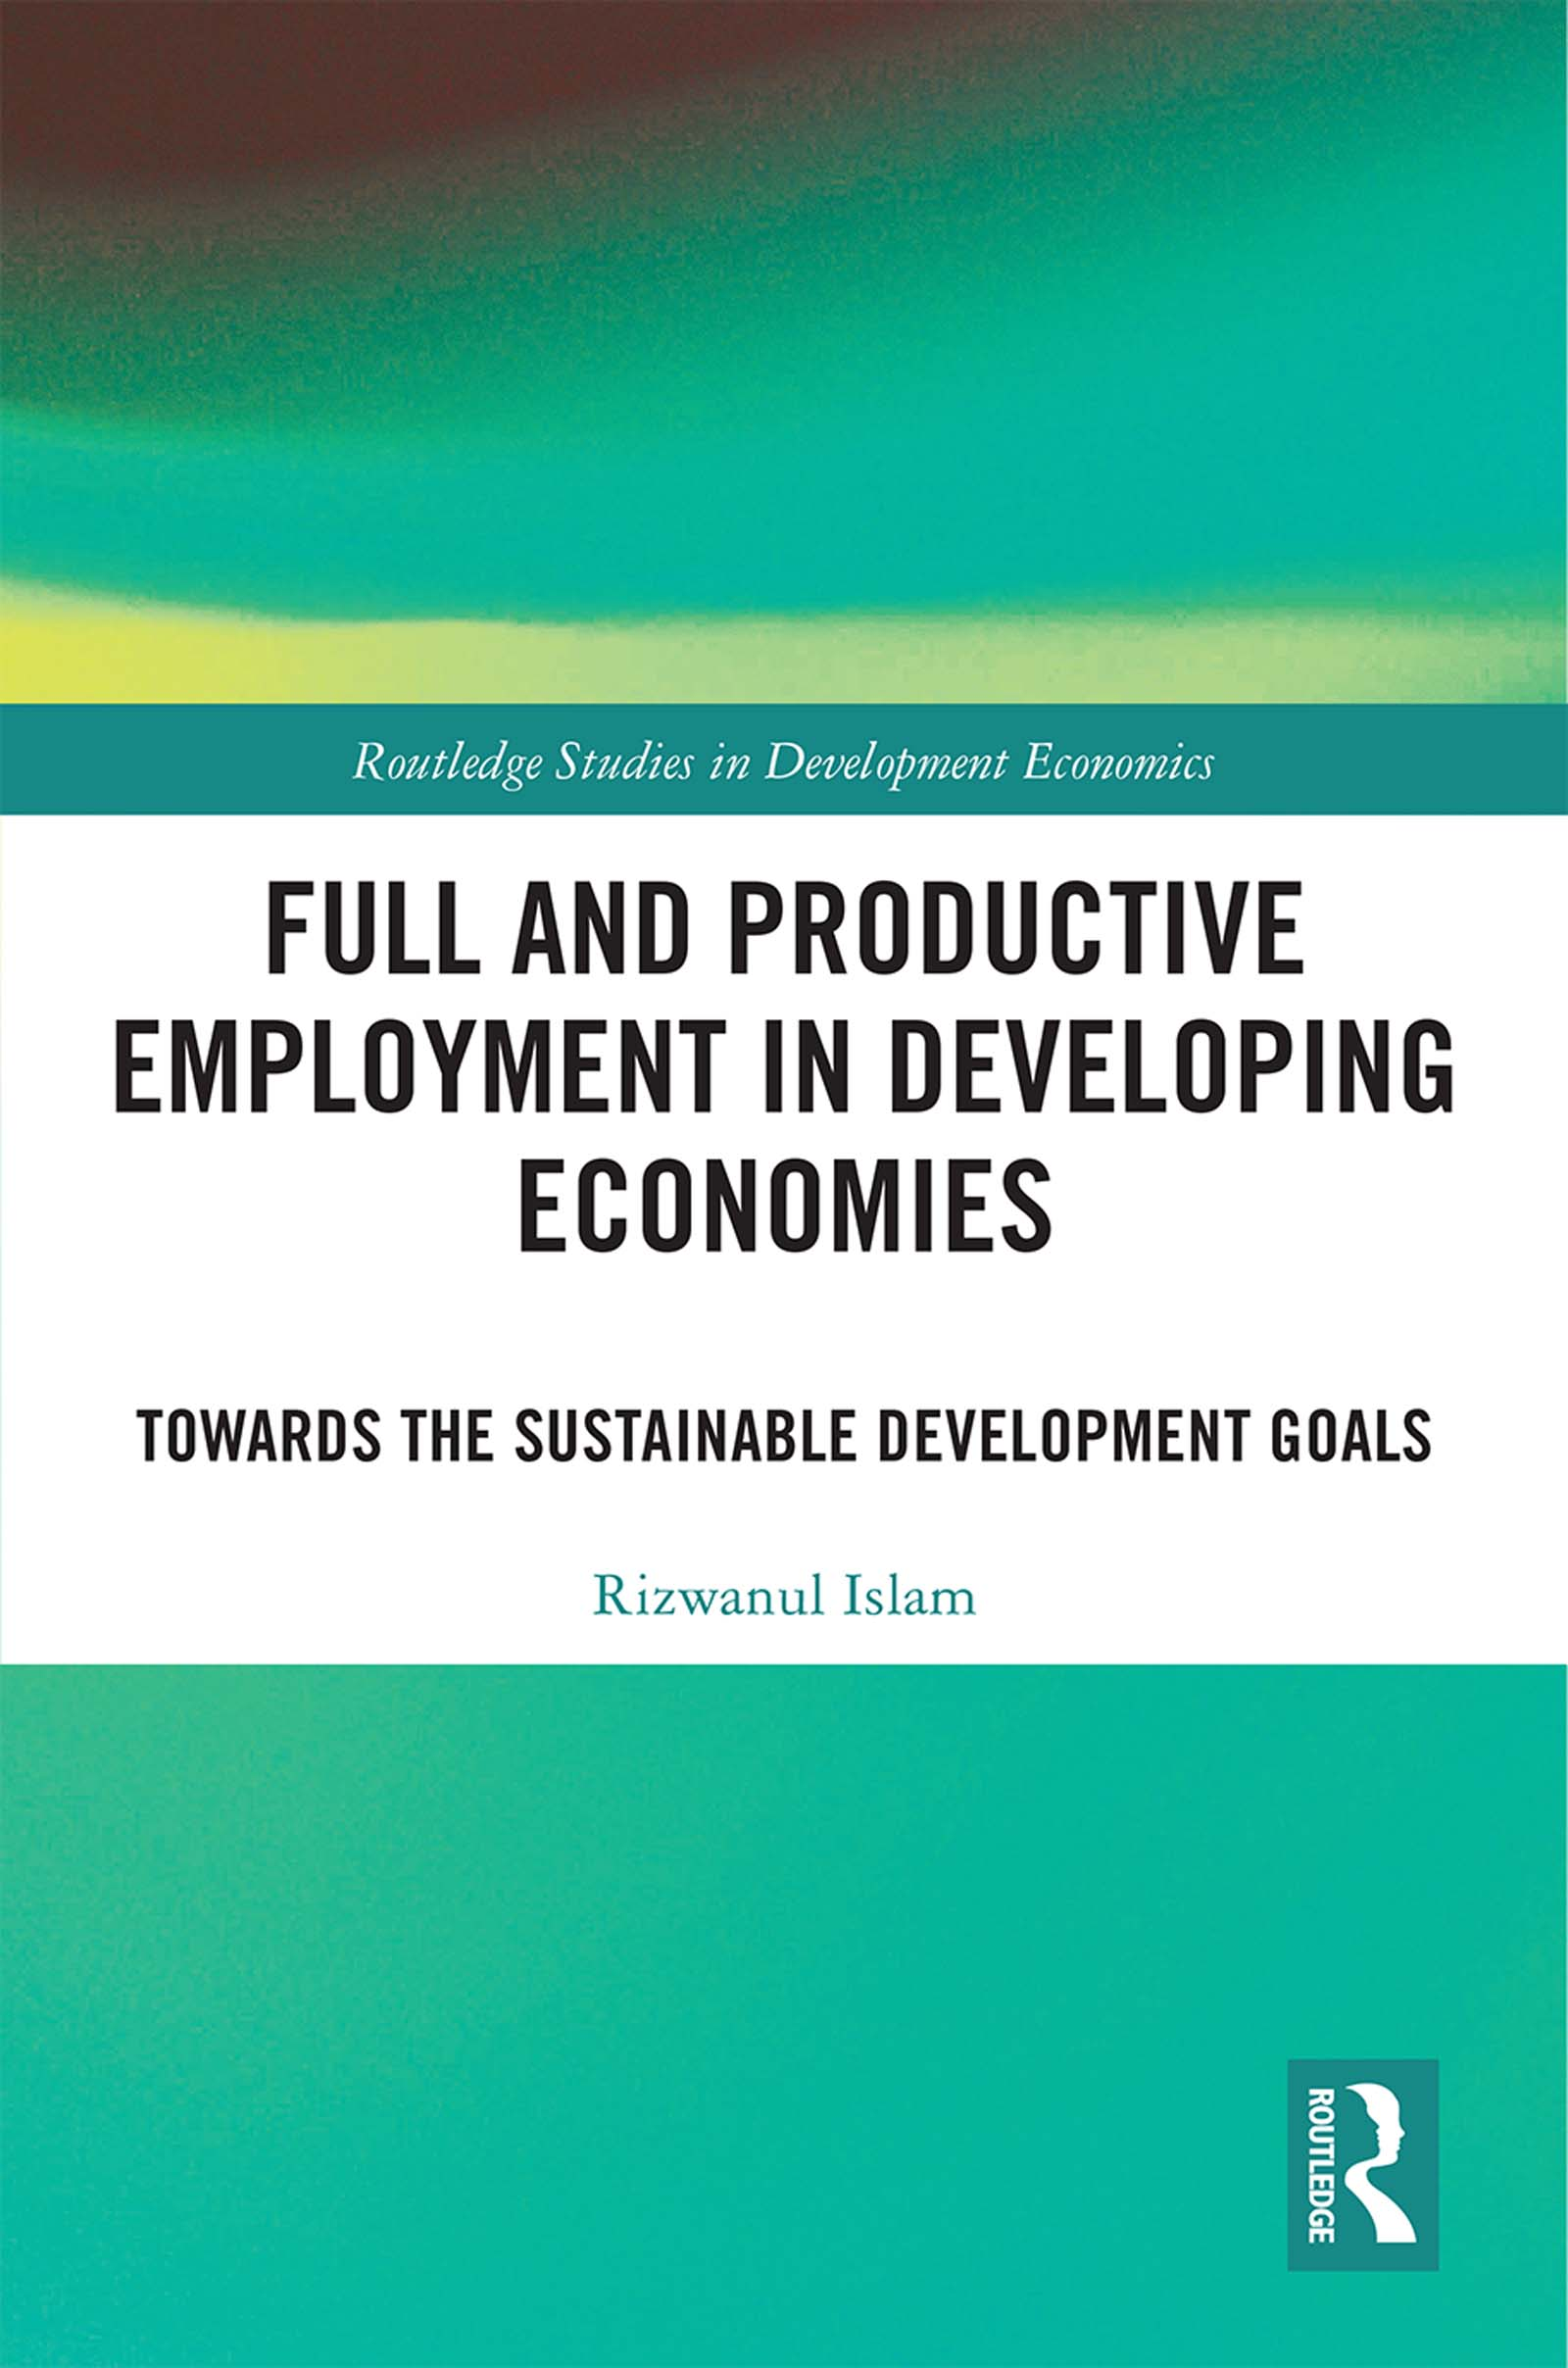 Full and Productive Employment in Developing Economies: Towards the Sustainable Development Goals book cover